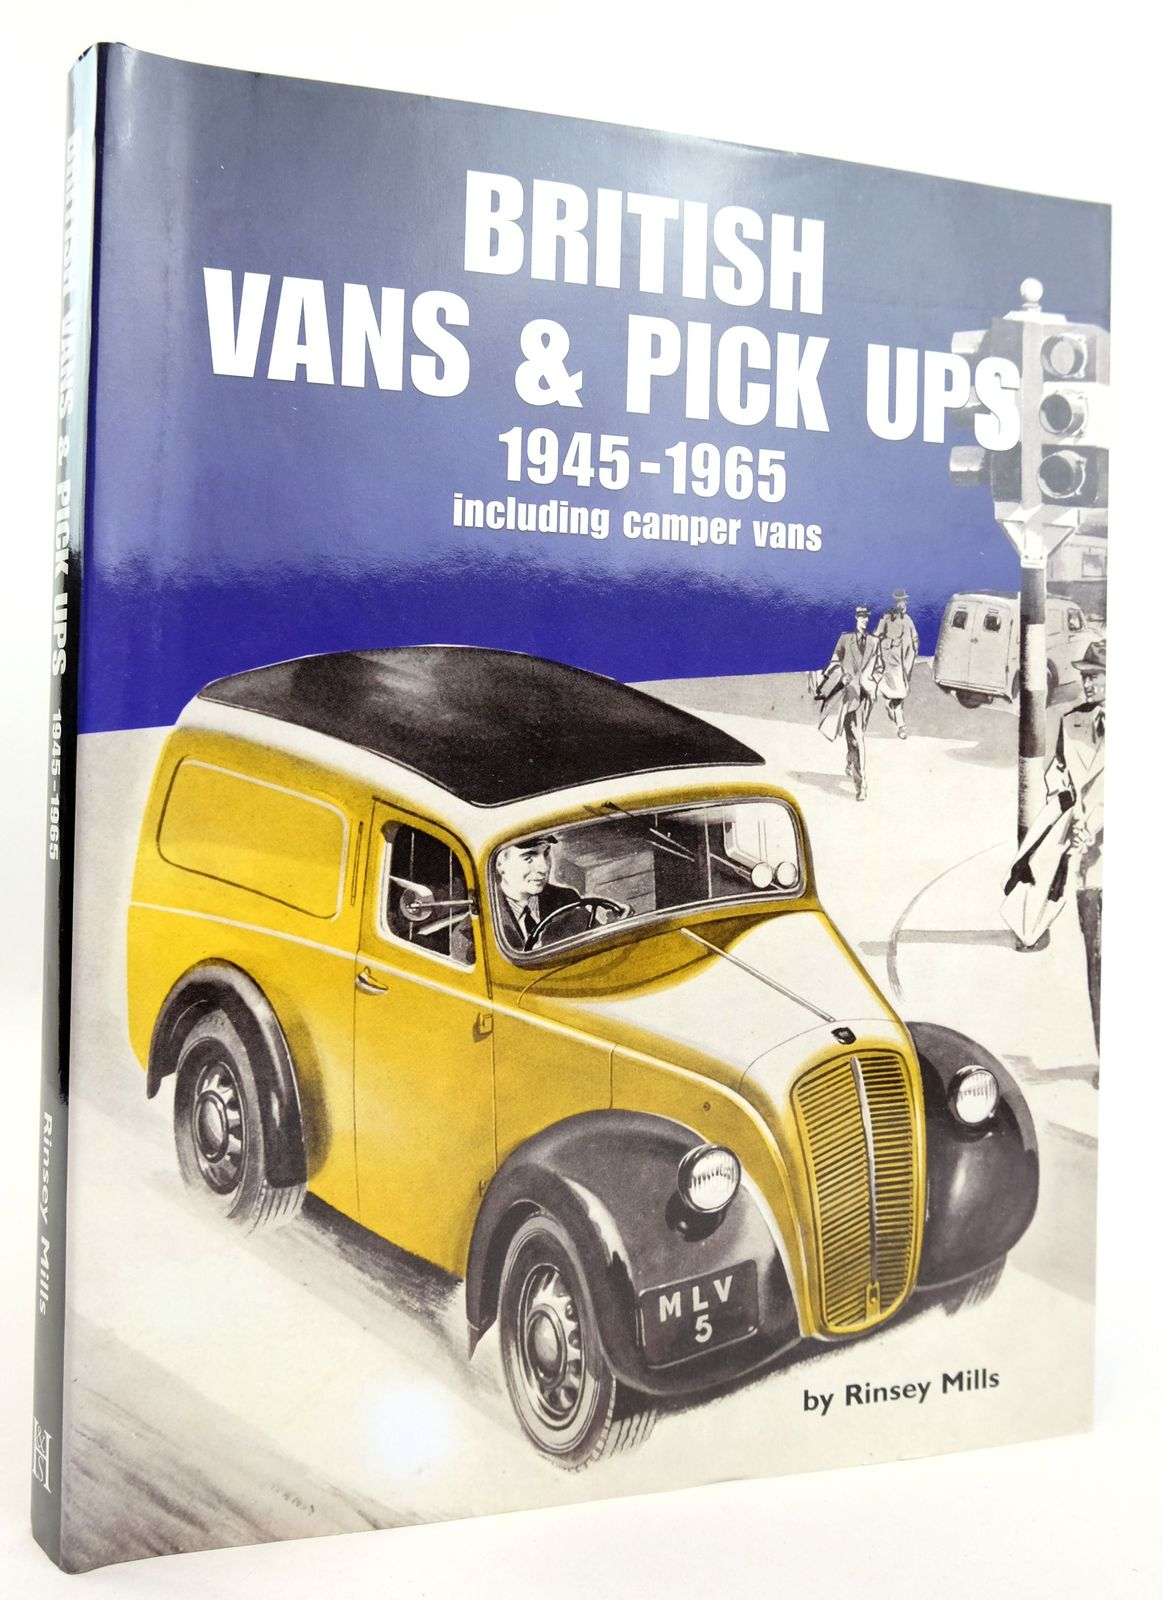 Photo of BRITISH VANS & PICK UPS 1945-1965 INCLUDING CAMPER VANS written by Mills, Rinsey published by Herridge & Sons (STOCK CODE: 1819107)  for sale by Stella & Rose's Books